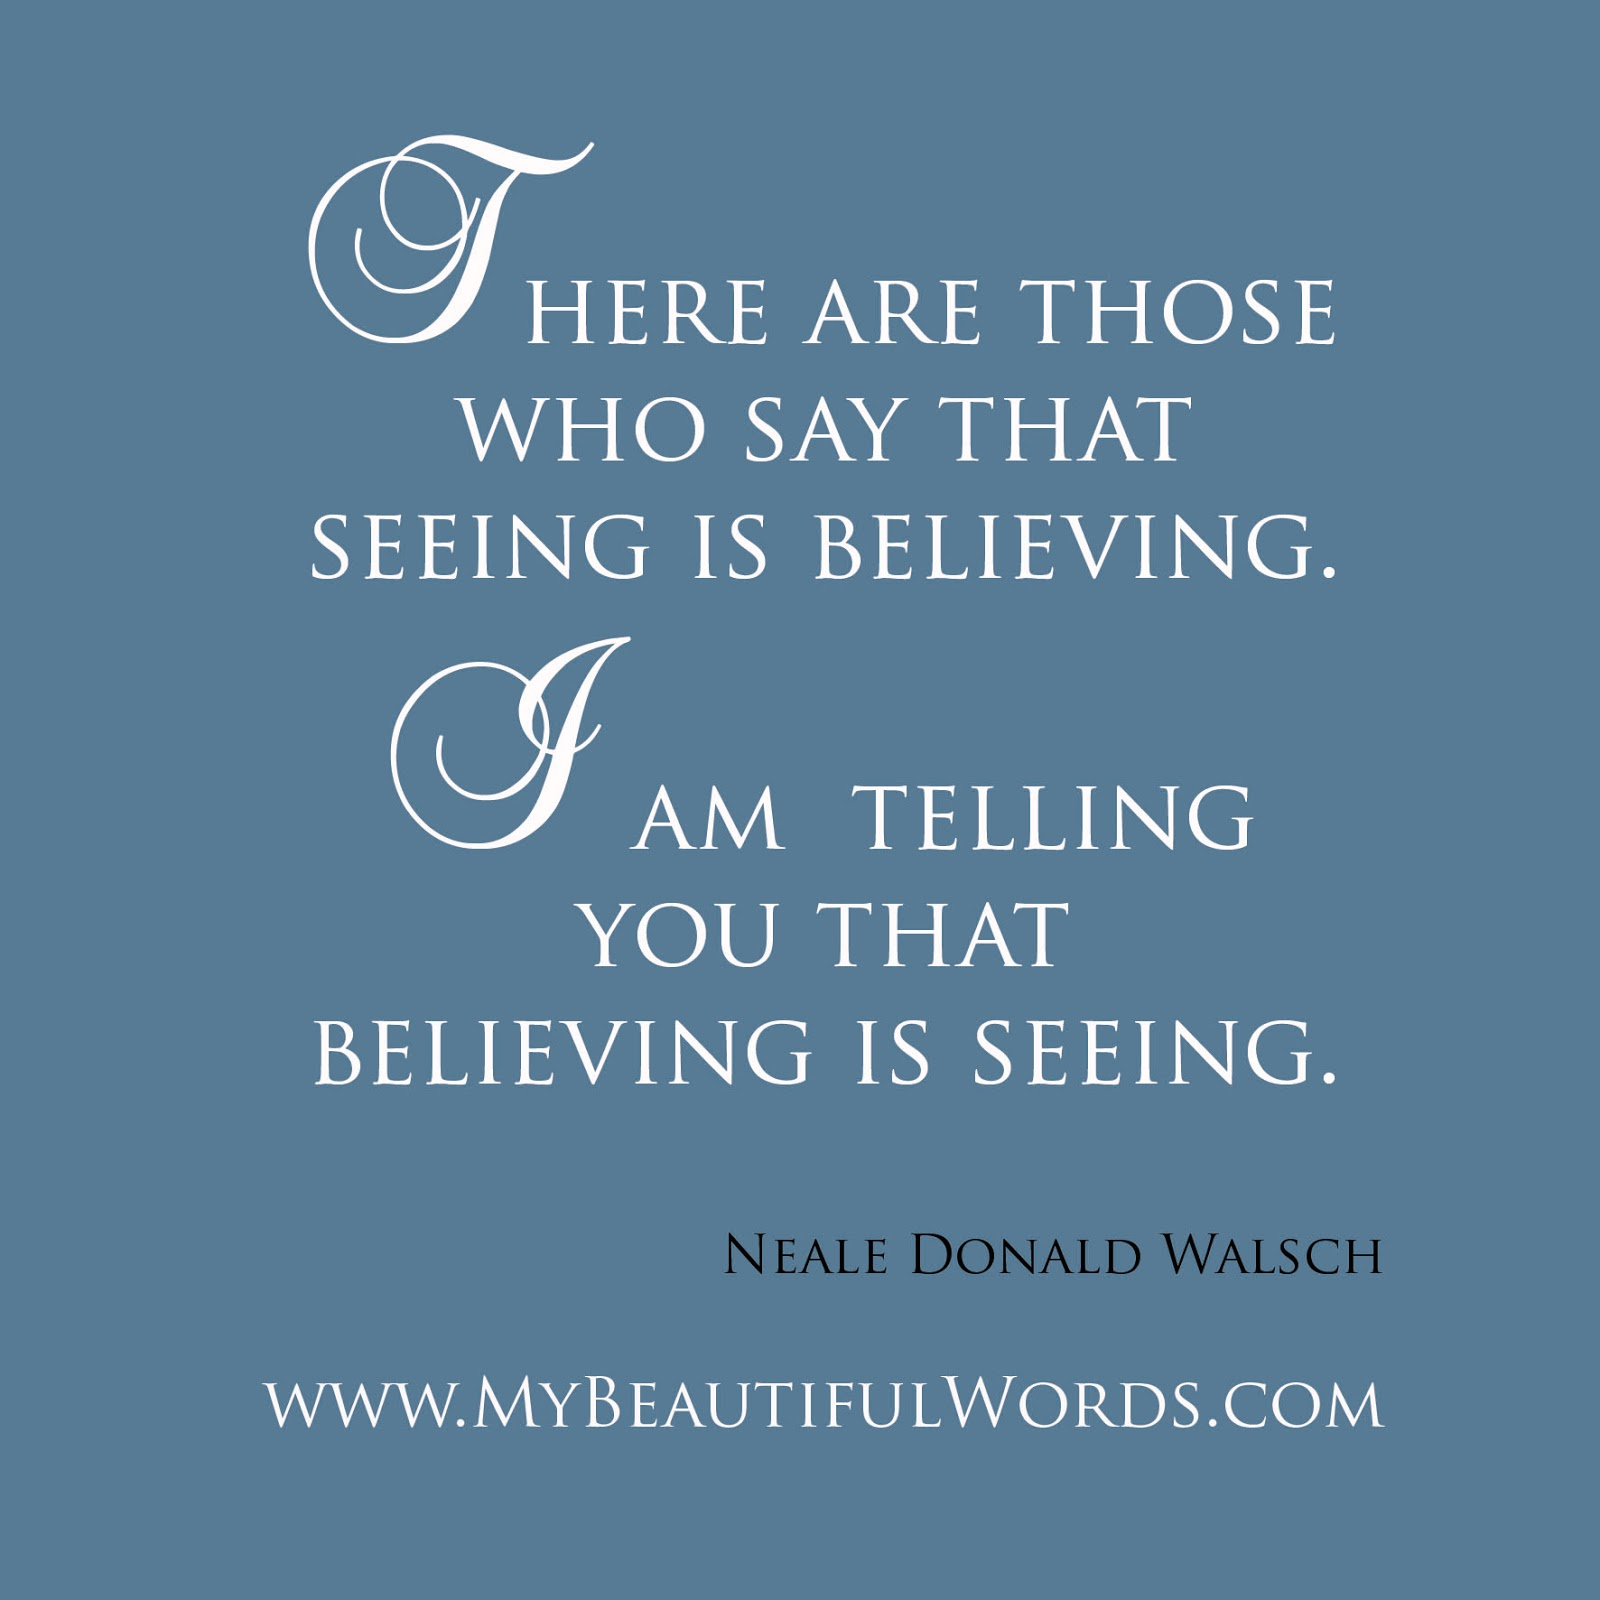 Neale Donald Walsch's quote #8